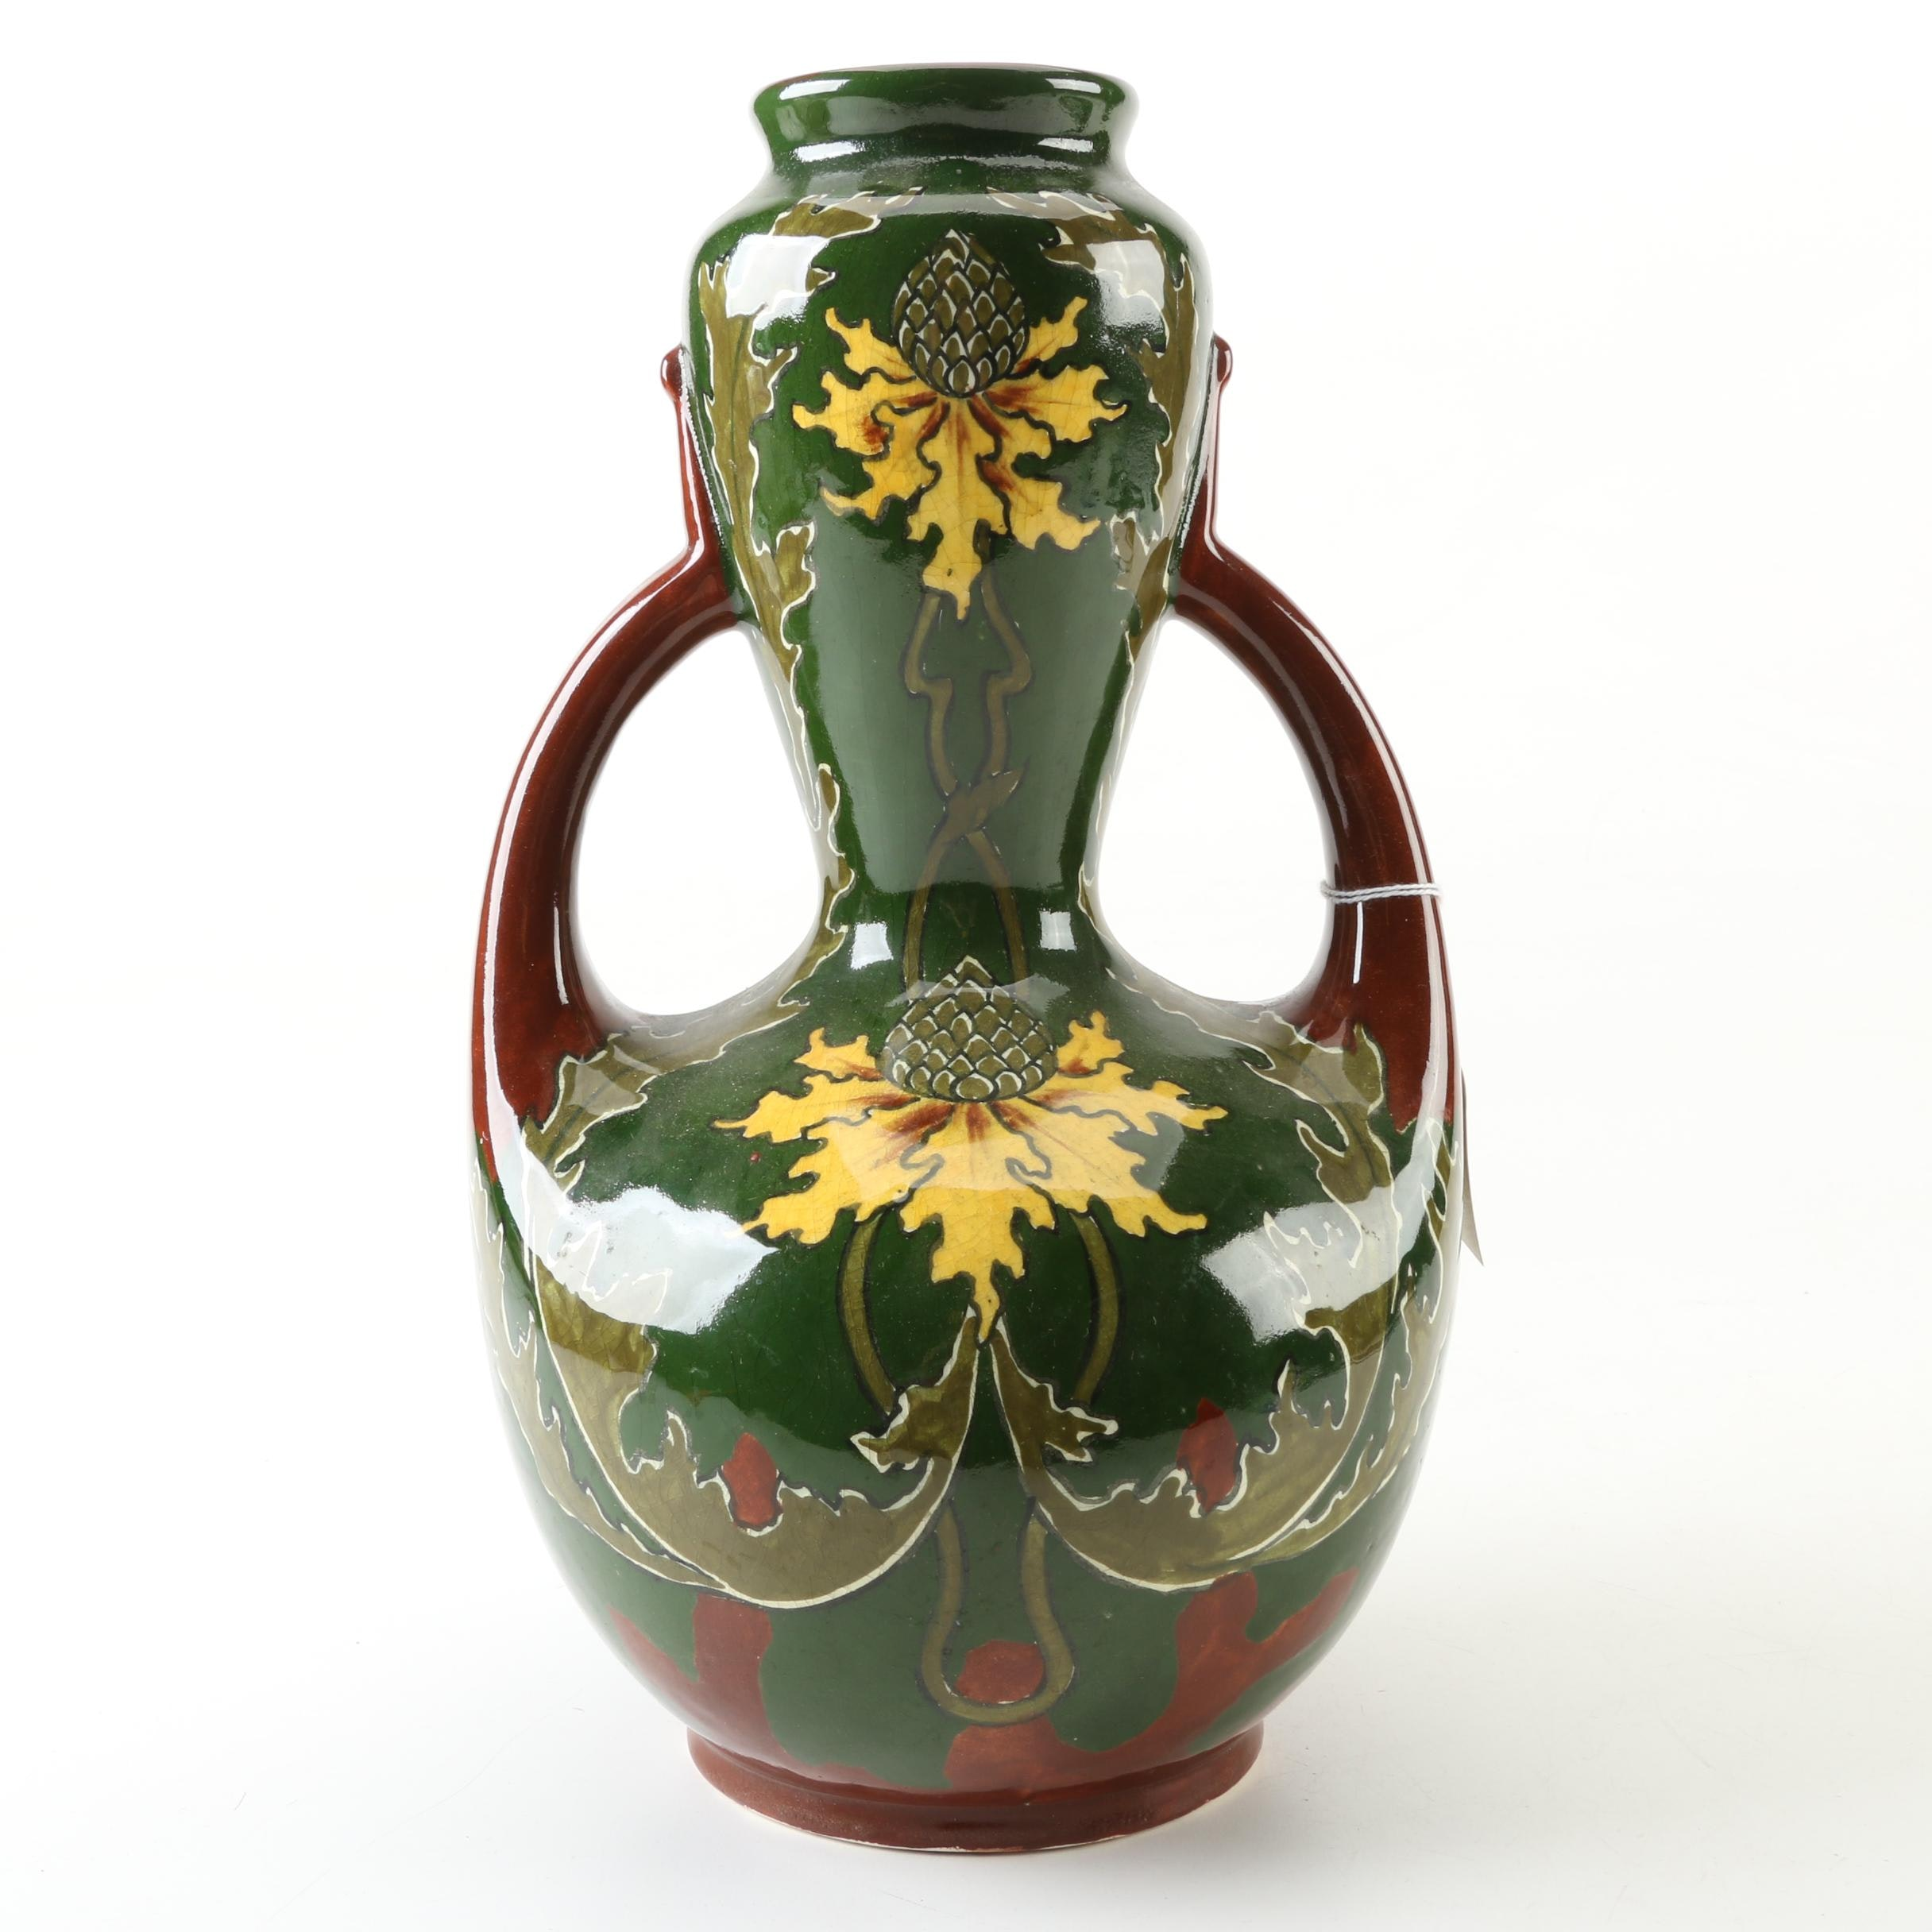 Old Moravian Pottery Arts and Crafts Hand-Painted Vase